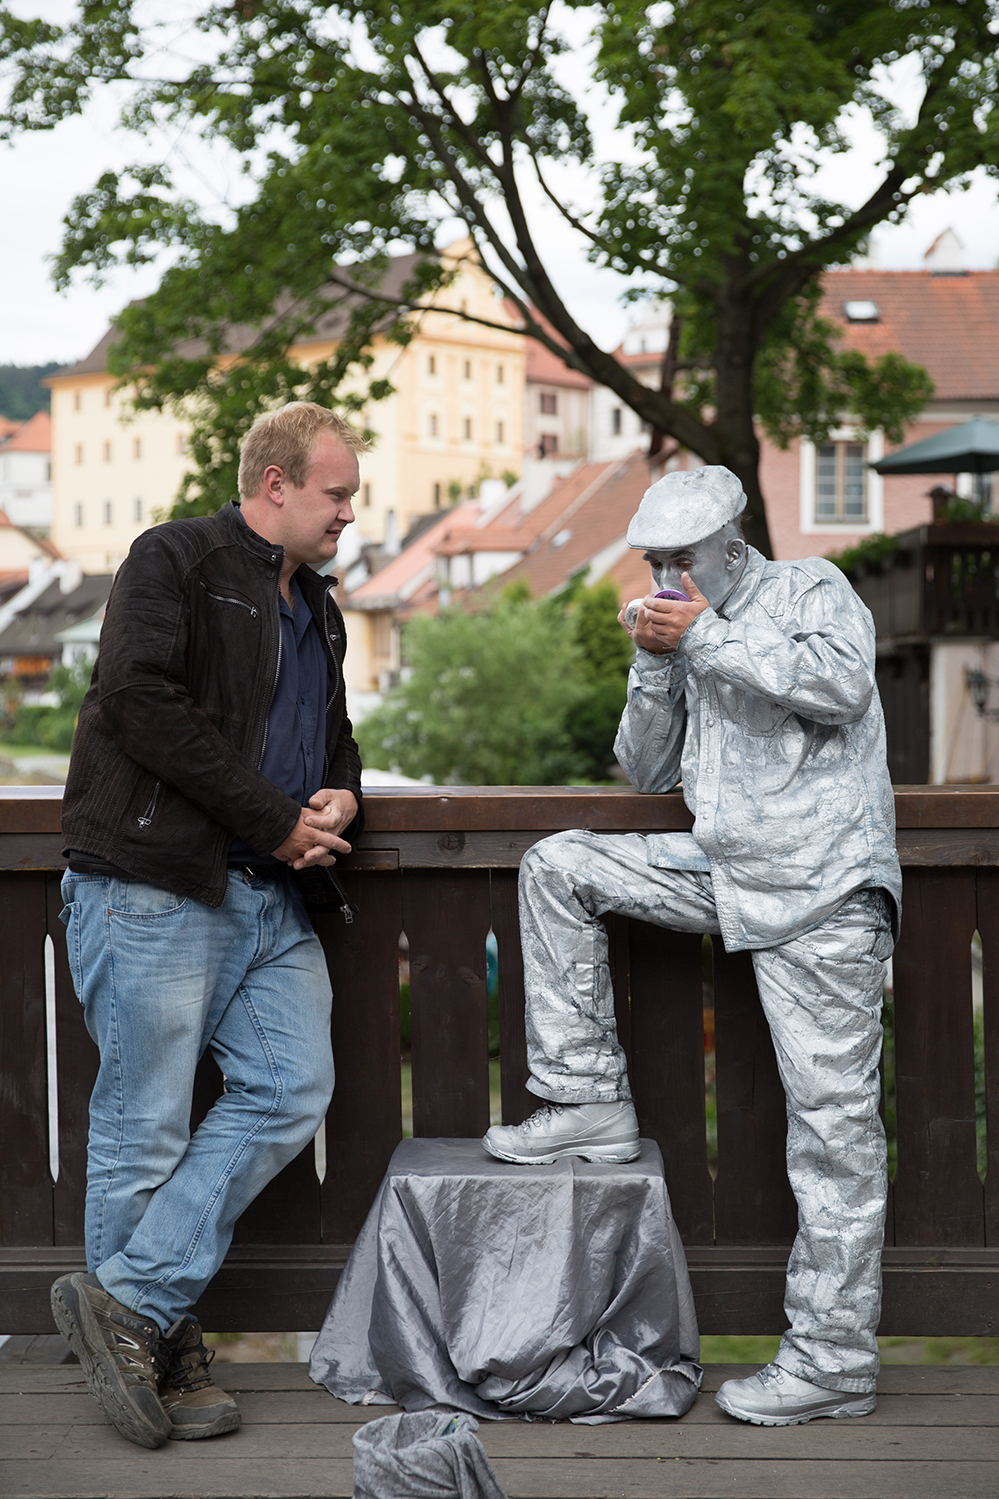 A documentary photograph of a man talking to human statue as he looks at himself in the mirror in cesky krumlov, Czech Republic